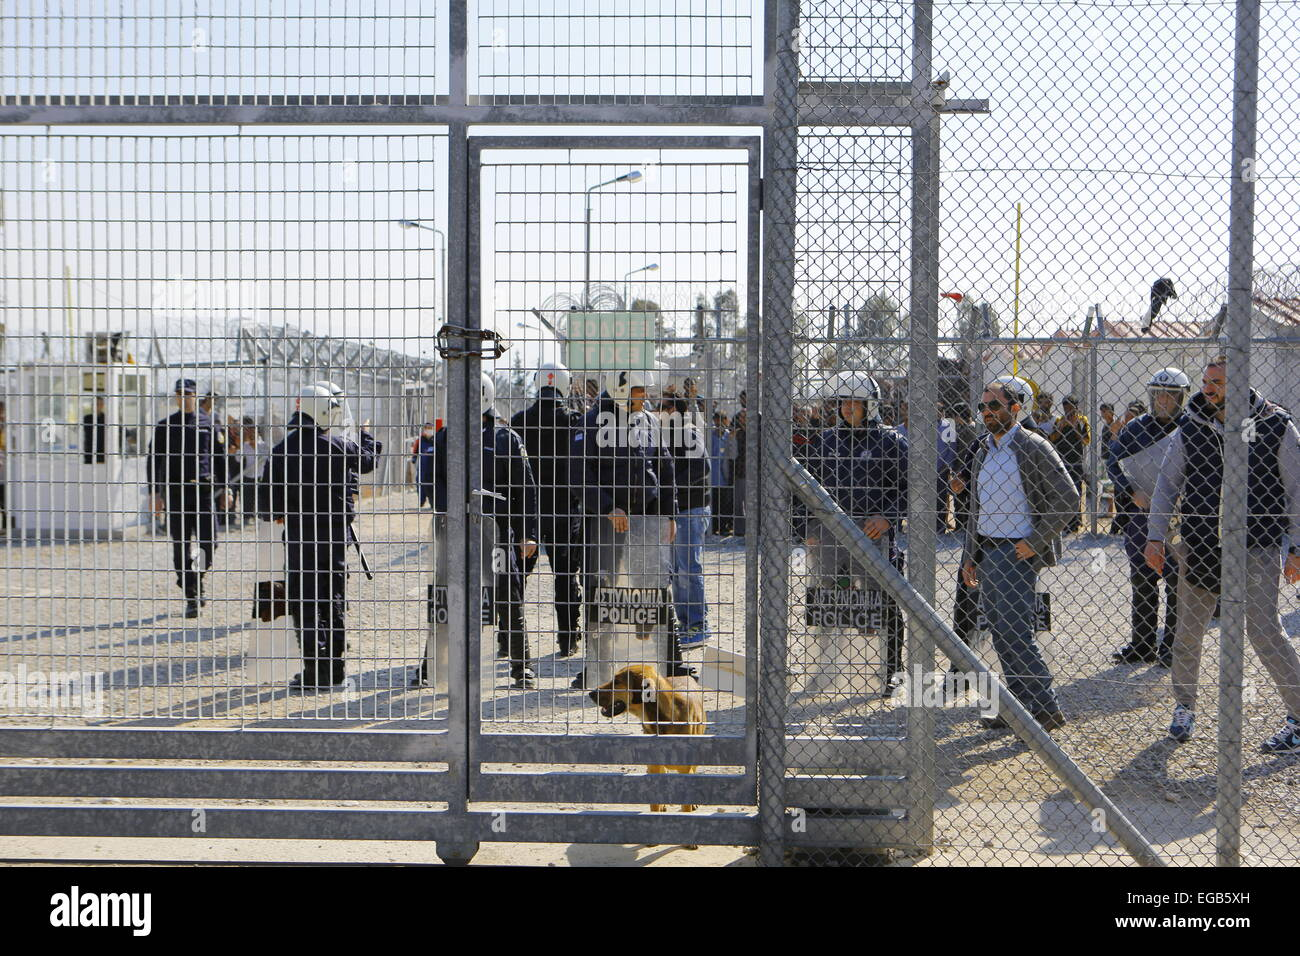 Athens, Greece. 21st February 2015. Riot police has moved into the detention camp itself. Minor scuffles between - Stock Image